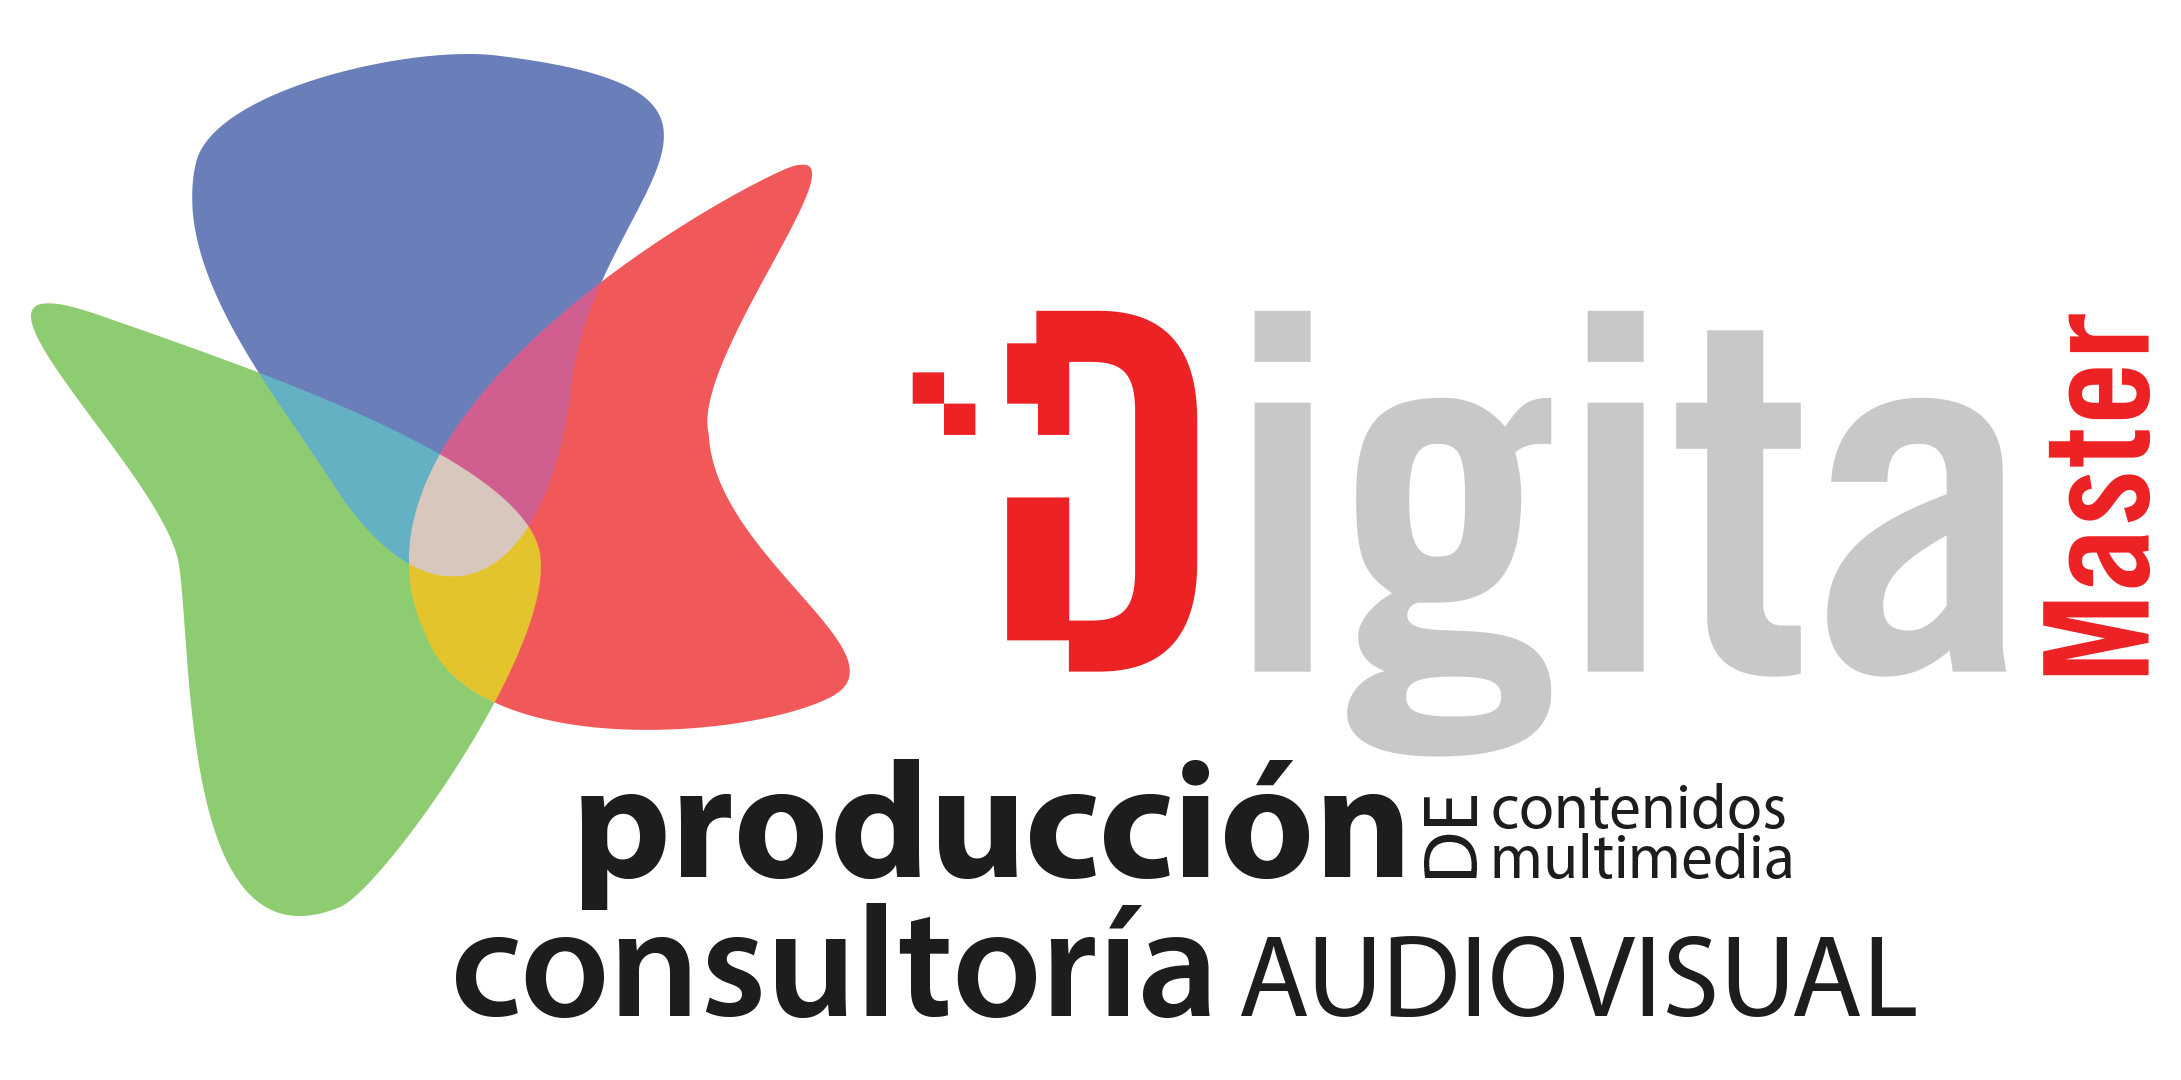 http://www.pitavalley.net/wp-content/uploads/2017/06/DigitalMaster-logo-300x200.png